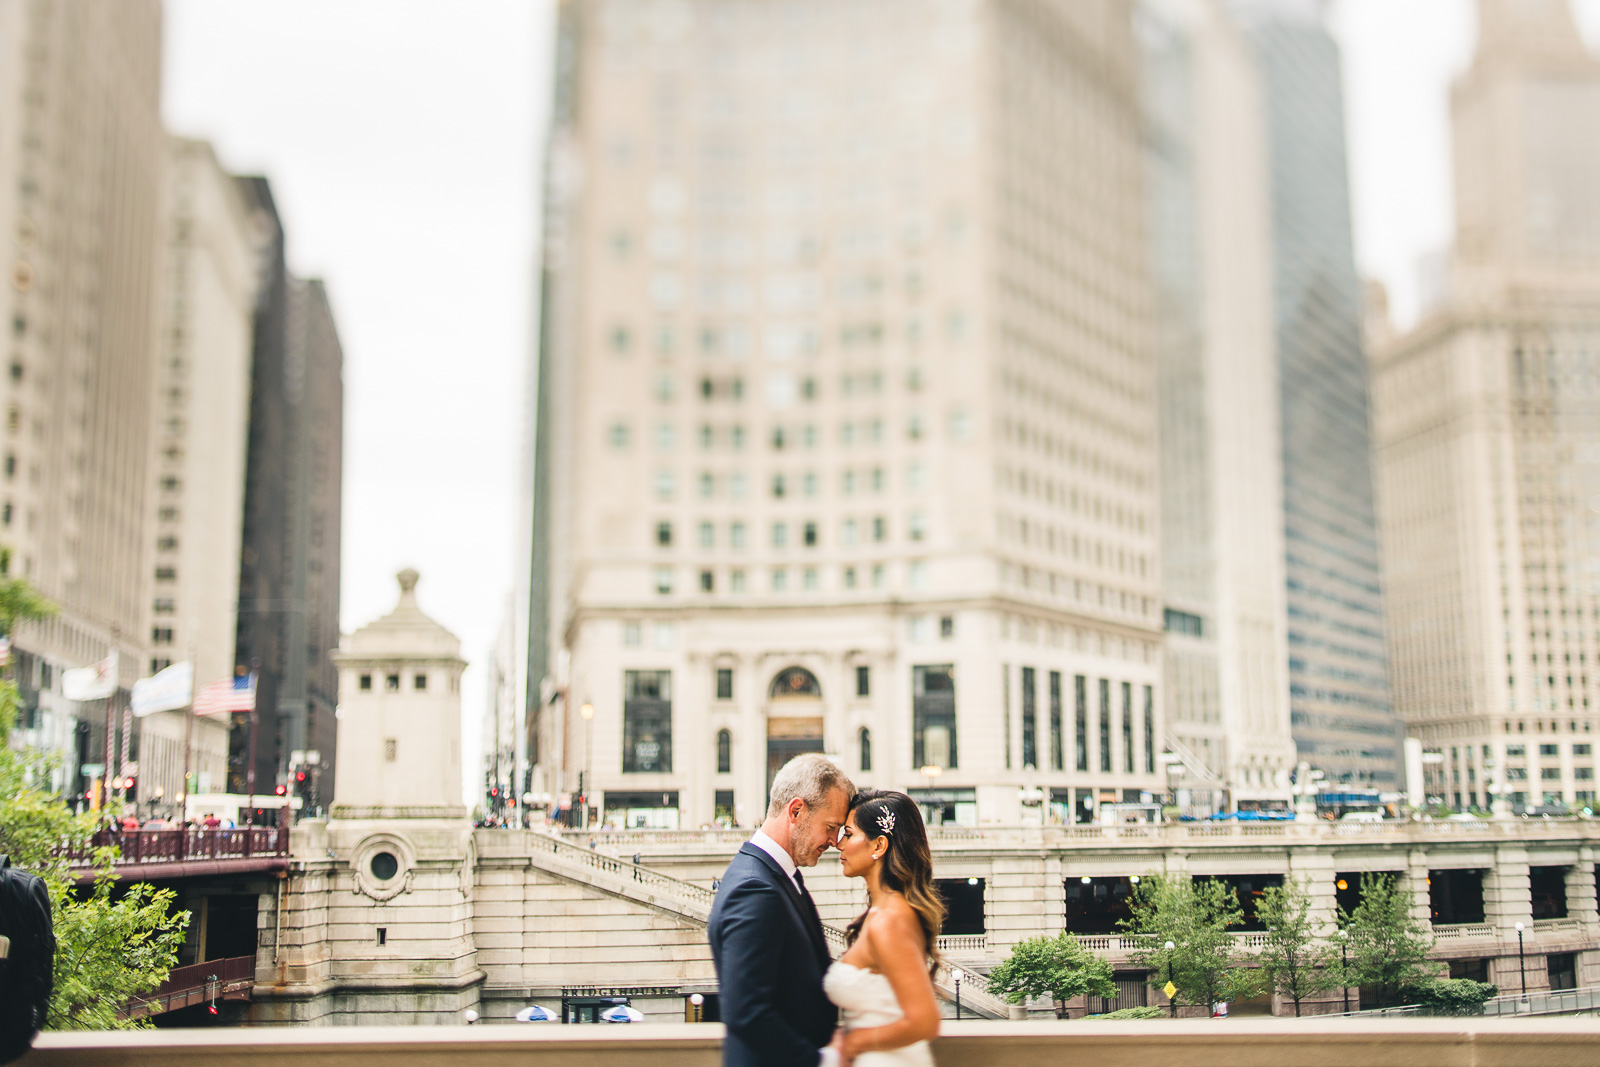 78 chicago wedding photographer best portraits during weddings review - 2018 in Review // My Favorite Chicago Wedding Photography Portraits